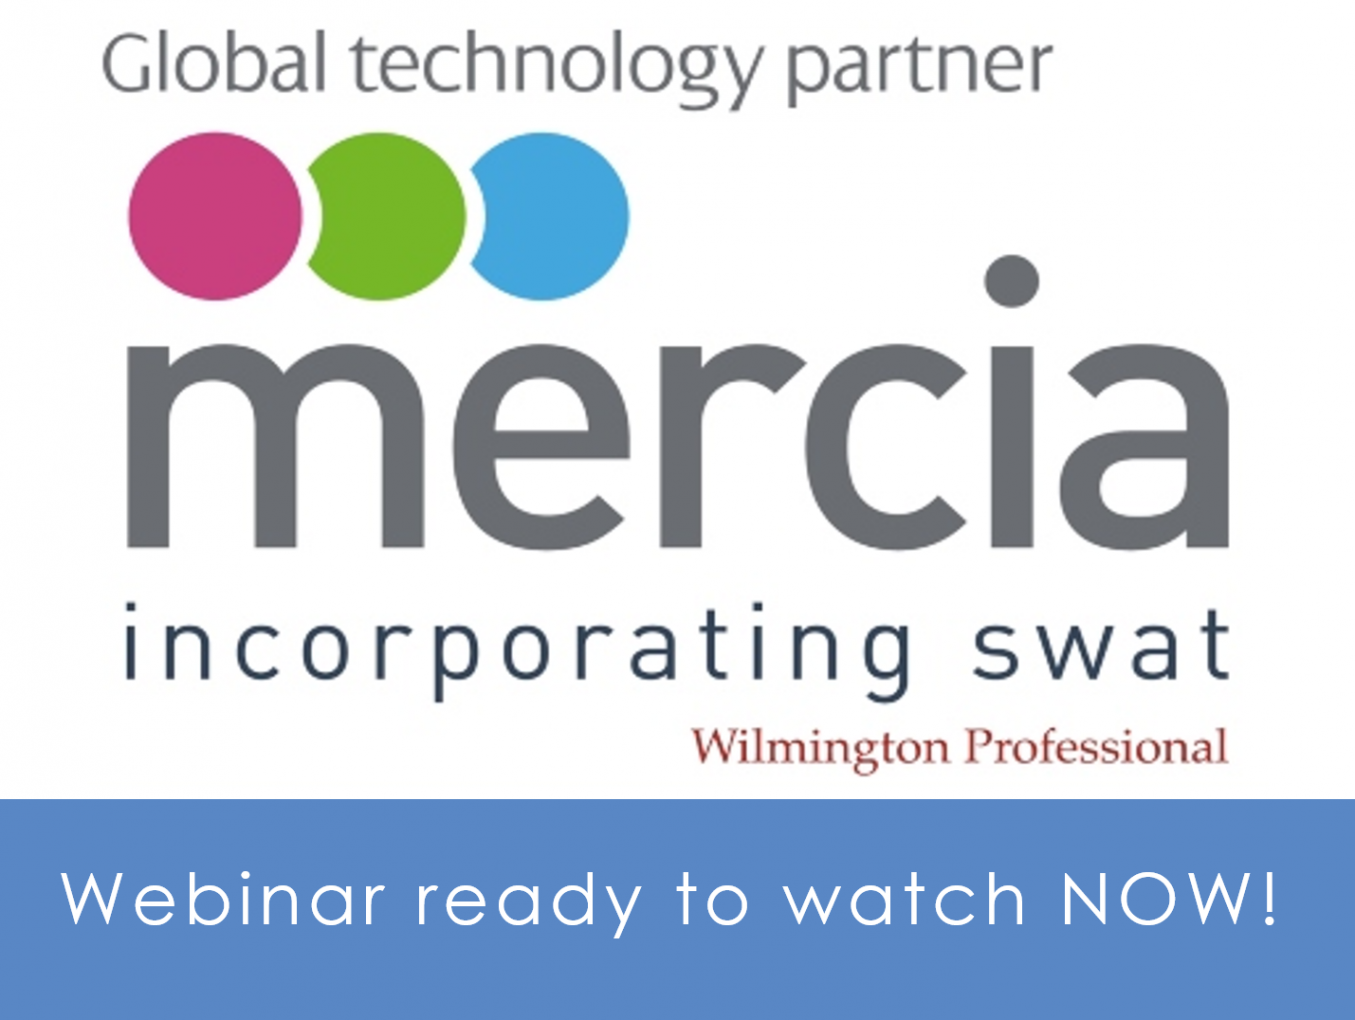 Auditing under Covid-19 Webinar by Jo Parker now ready to watch on demand